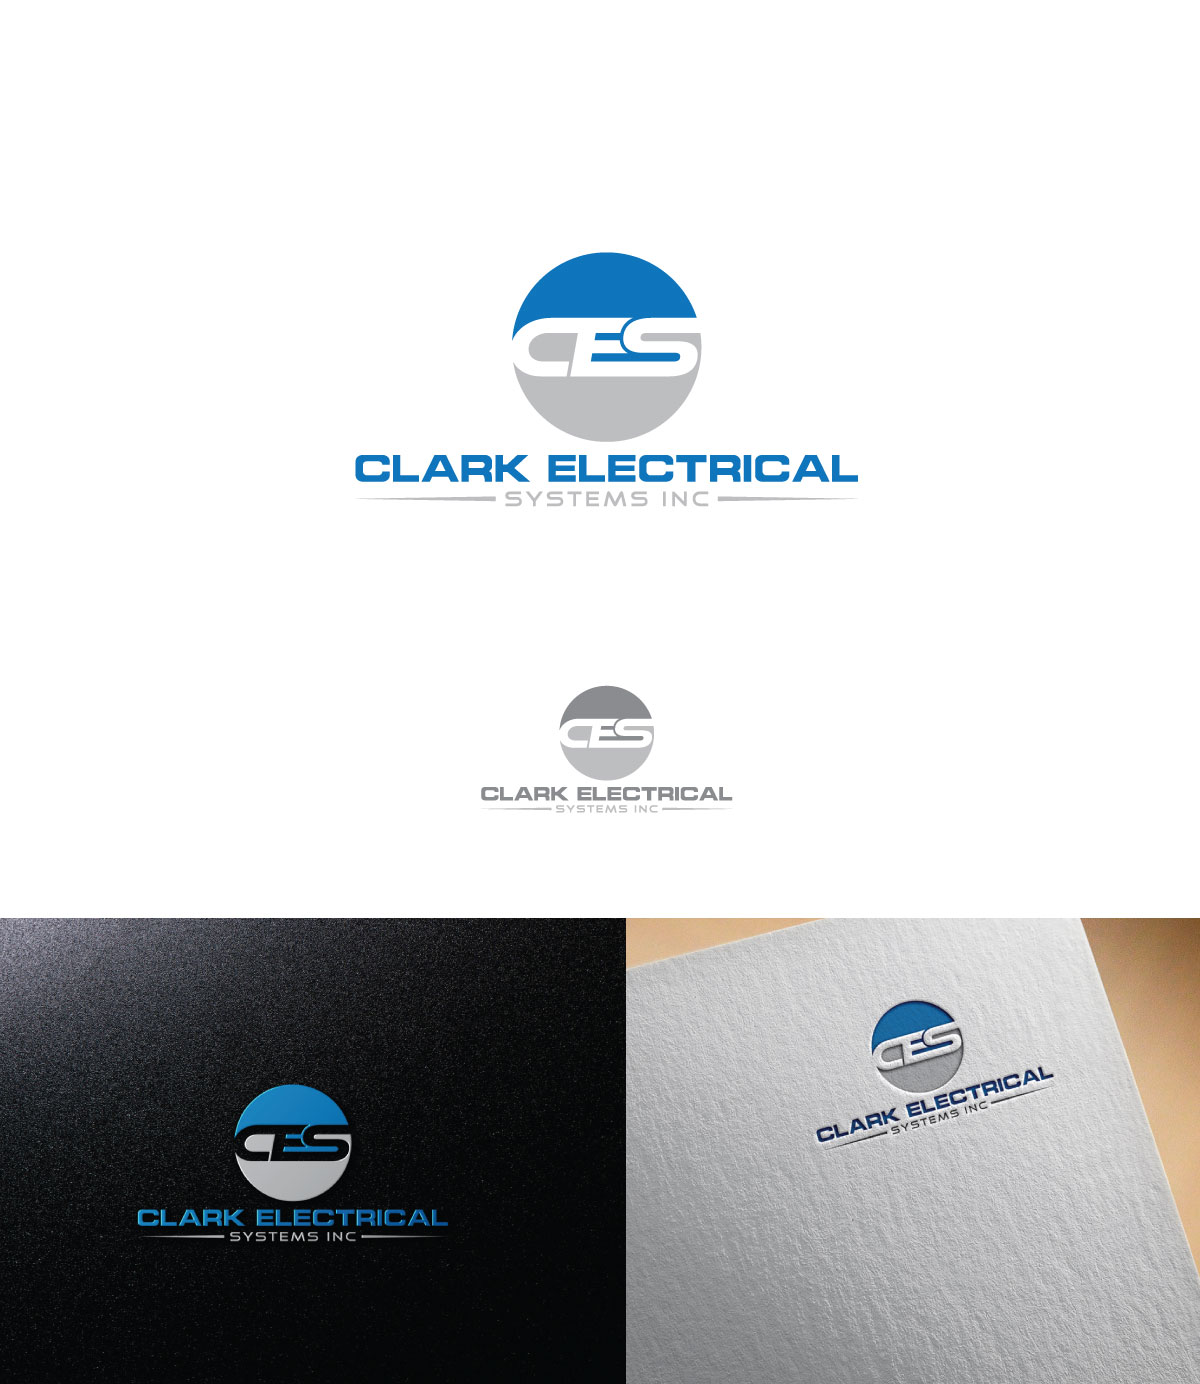 Logo Design by Istahak Ahmed - Entry No. 37 in the Logo Design Contest Artistic Logo Design for Clark Electrical Systems Inc..